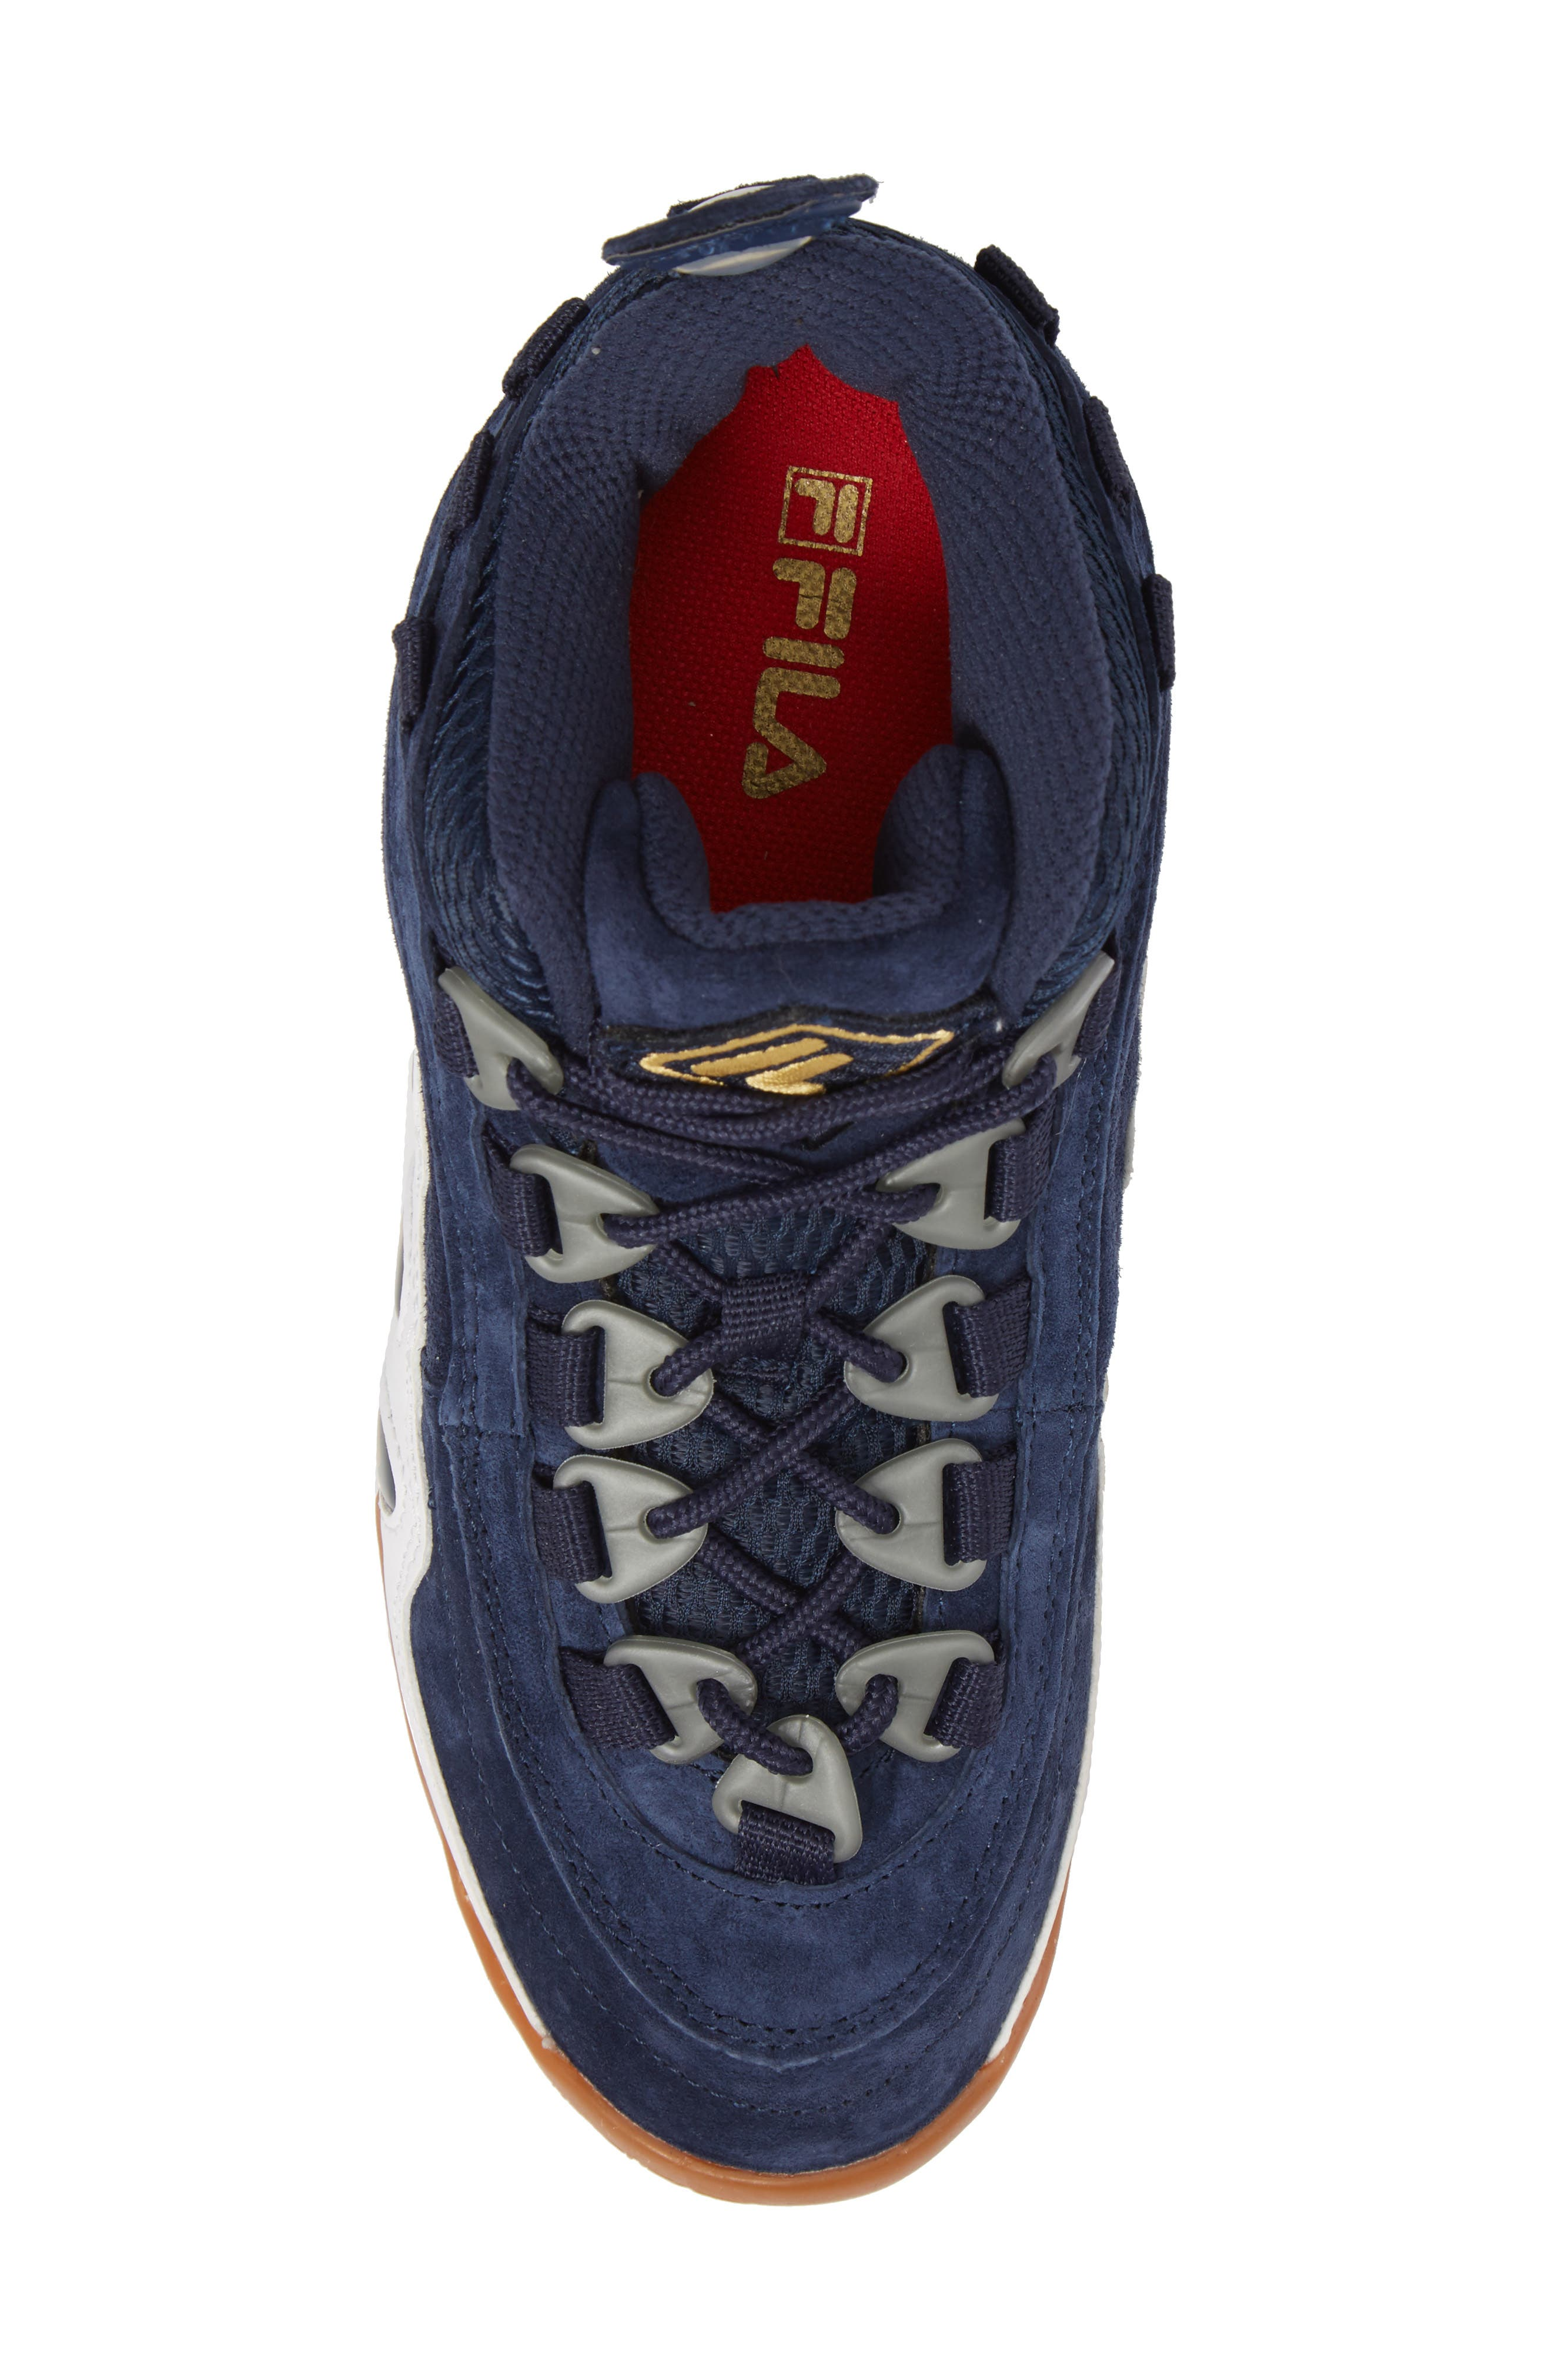 Bubbles Mid Top Sneaker Boot,                             Alternate thumbnail 5, color,                             NAVY/ GOLD/ WHITE